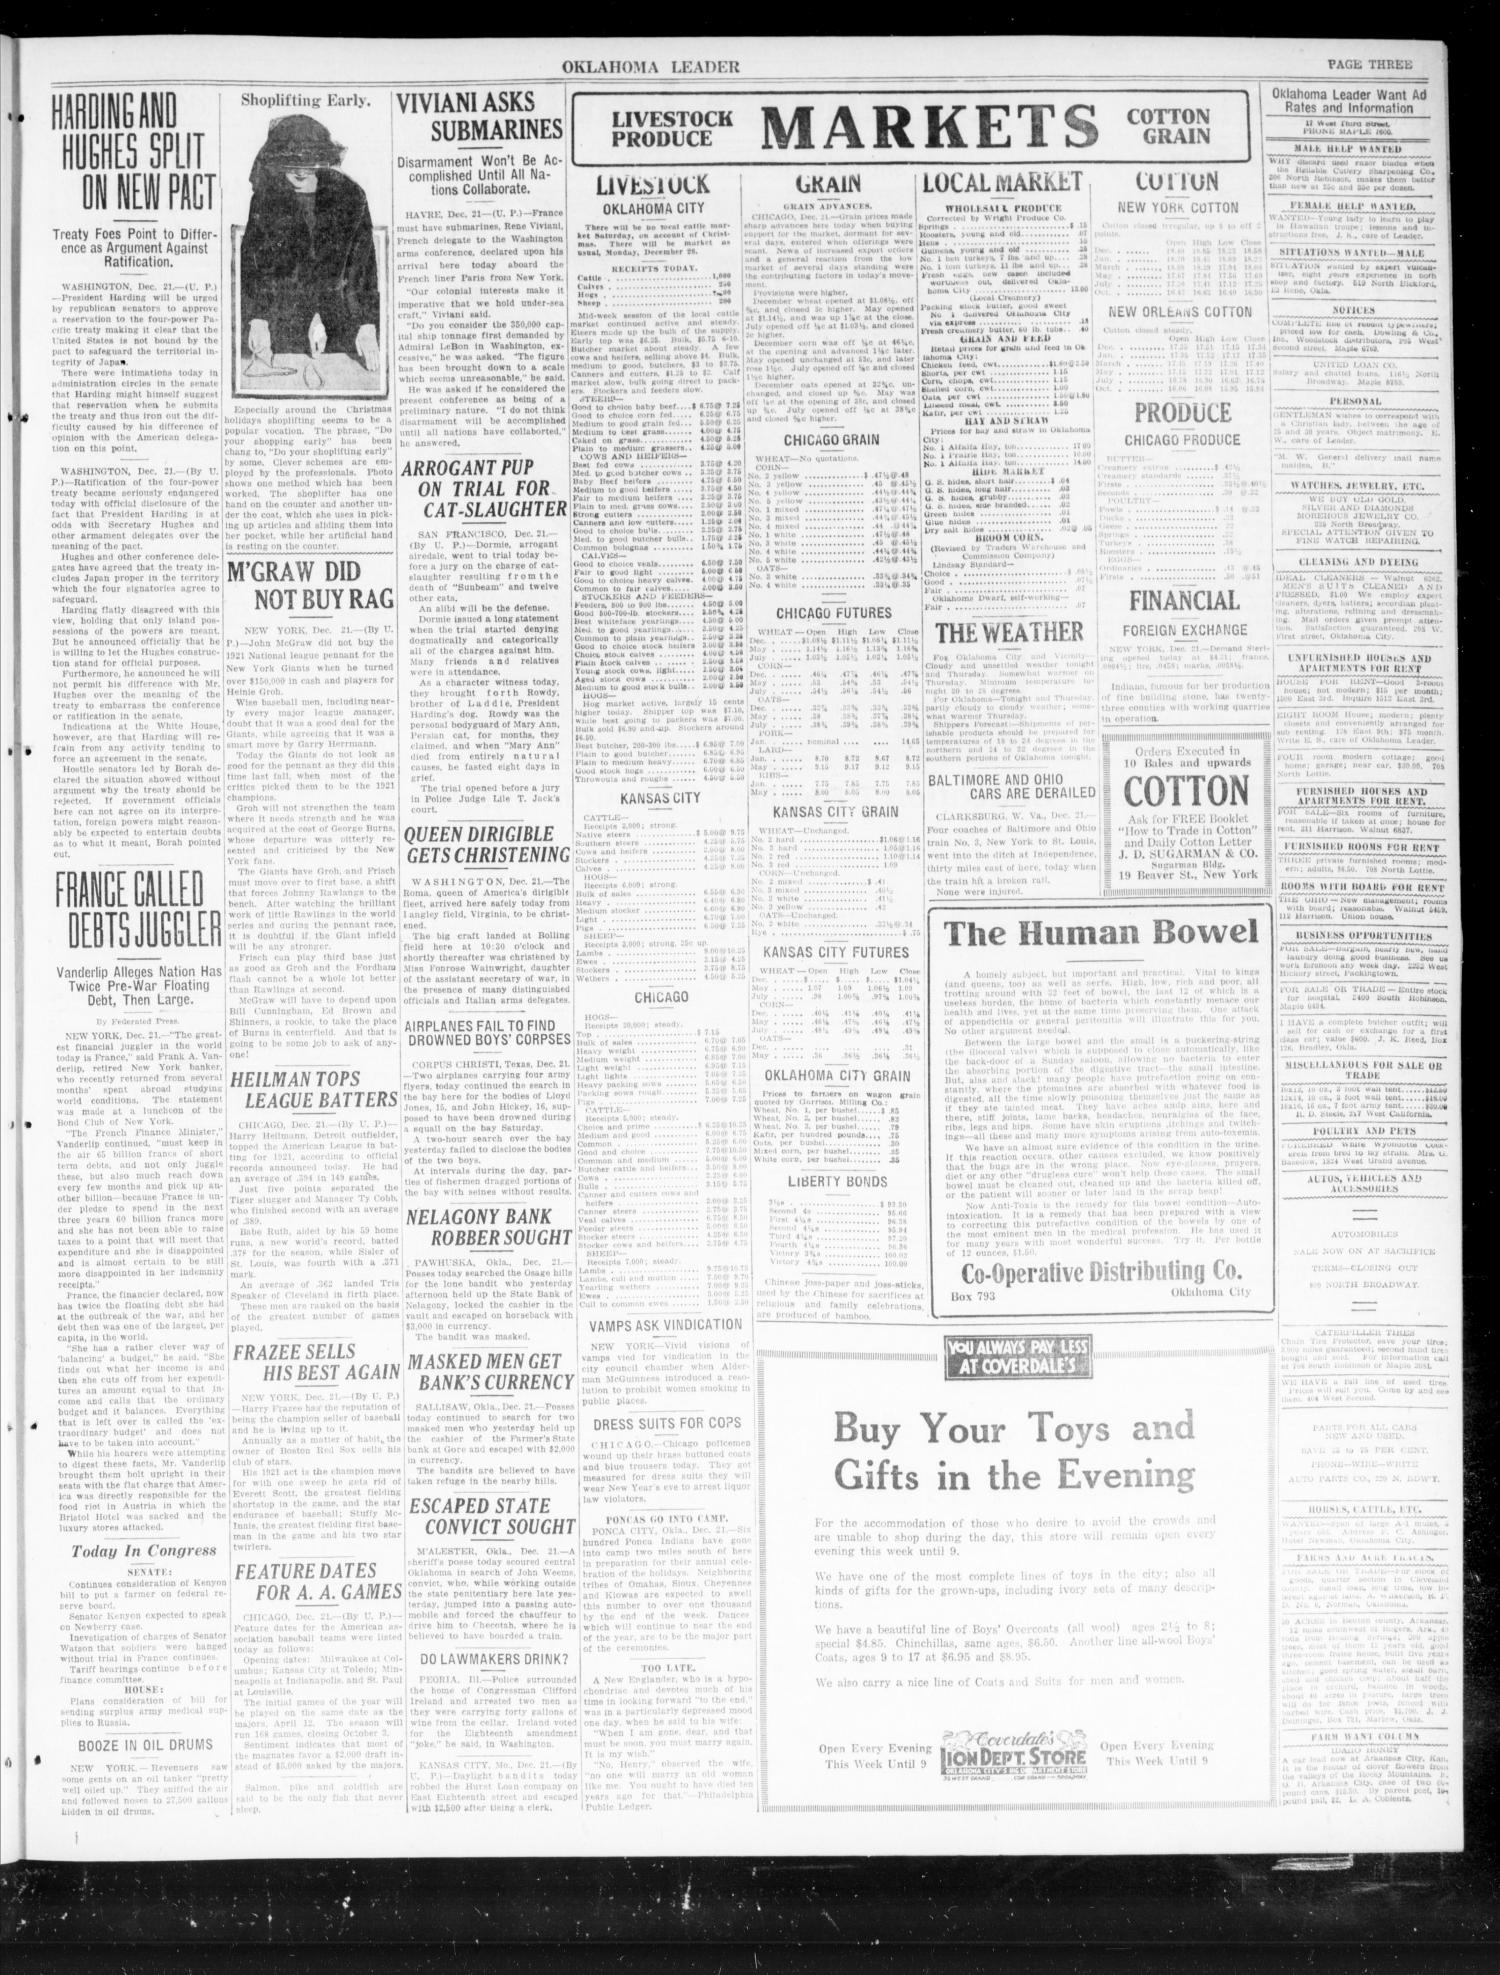 Oklahoma Leader (Oklahoma City, Okla.), Vol. 2, No. 110, Ed. 1 Wednesday, December 21, 1921                                                                                                      [Sequence #]: 3 of 4